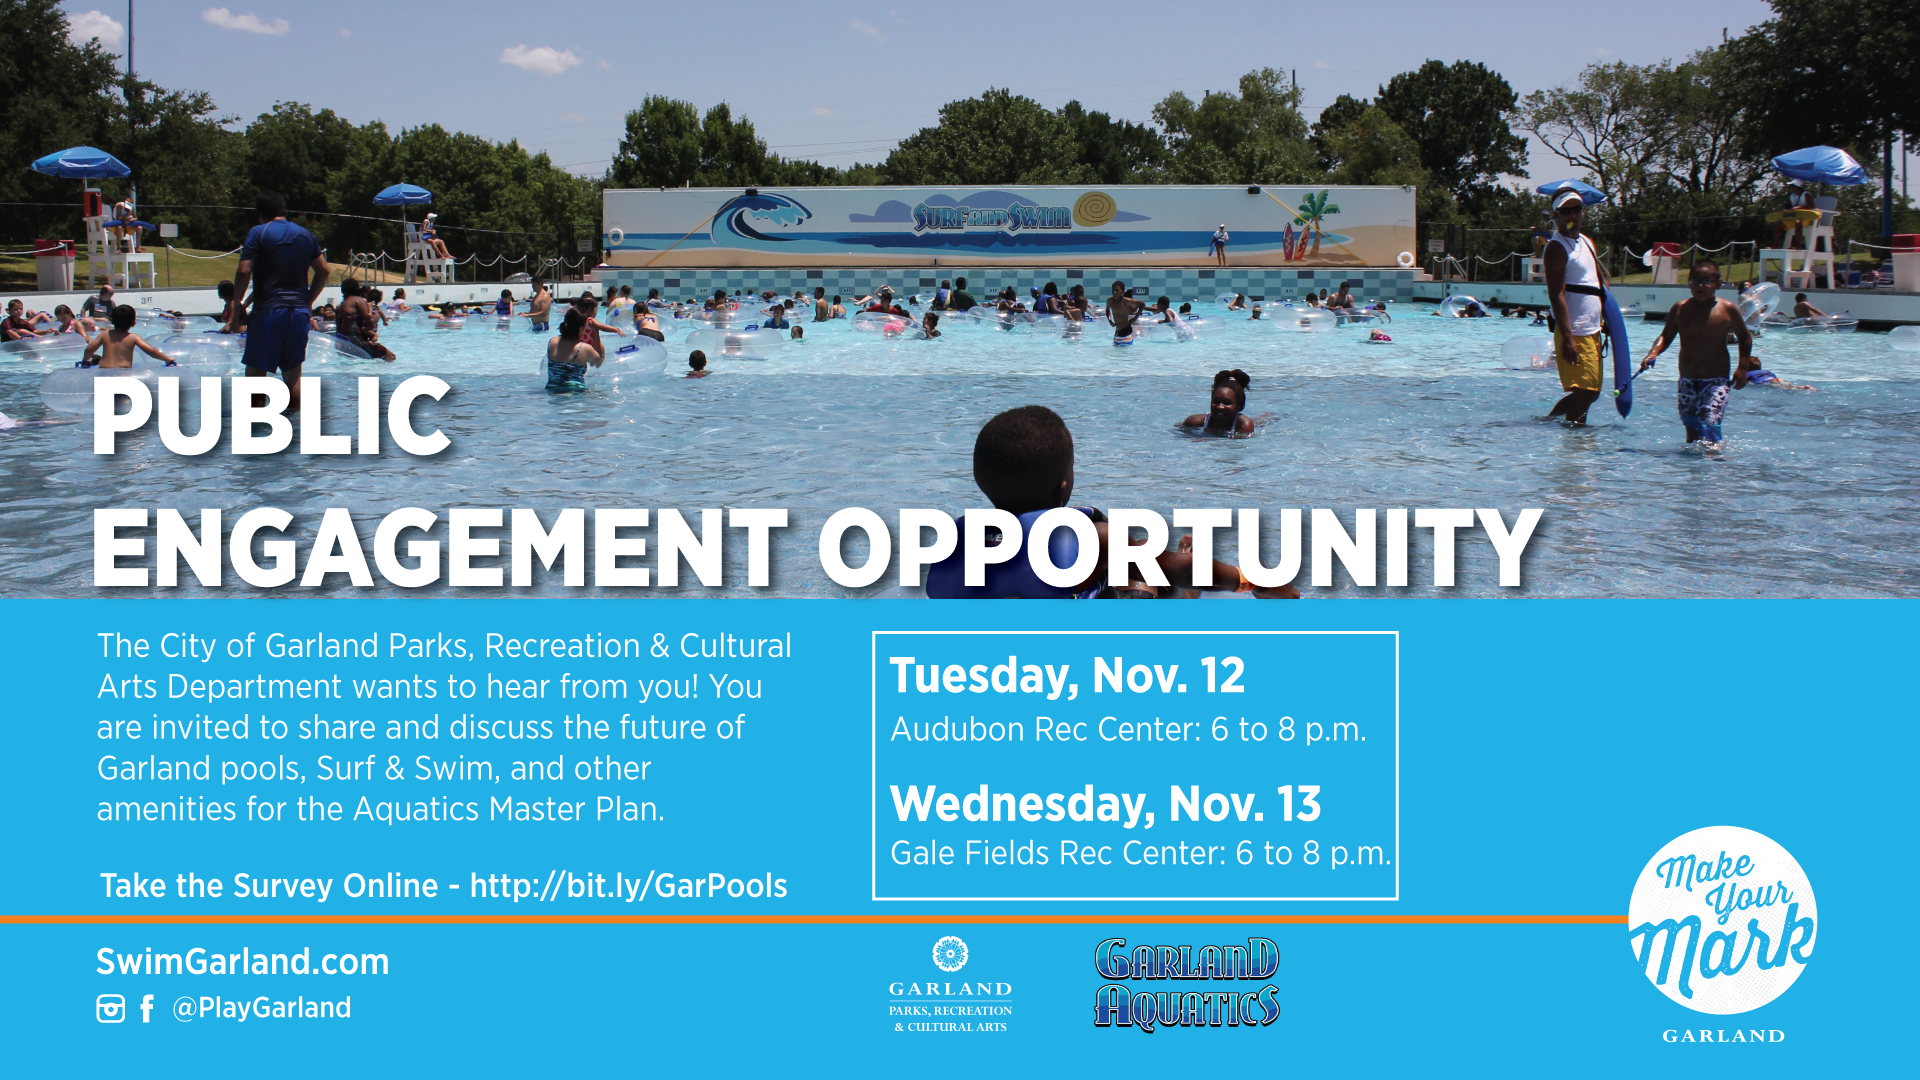 Aquatics Master Plan Flyer for November 12 and November 13